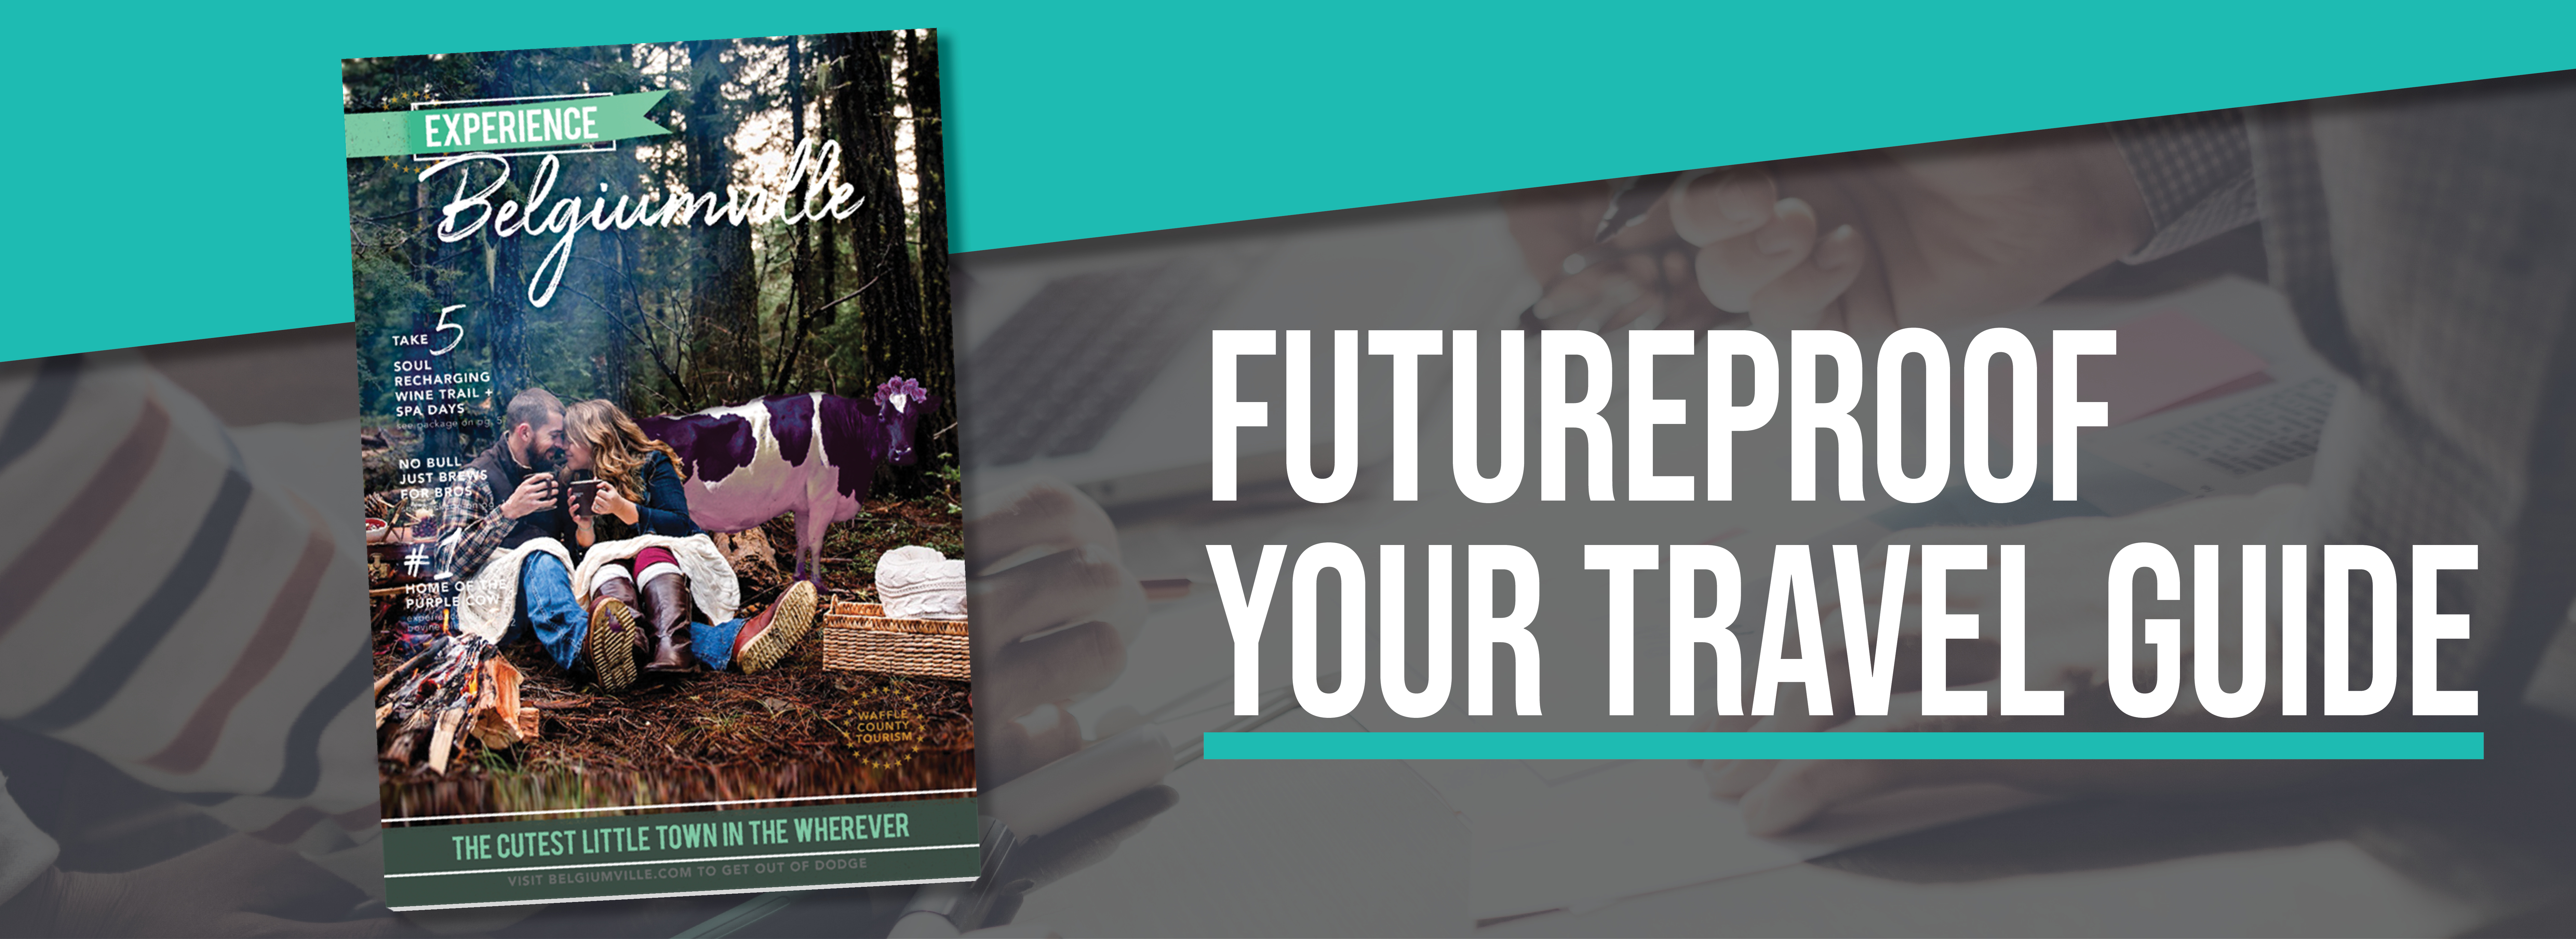 futureproof your travel guide